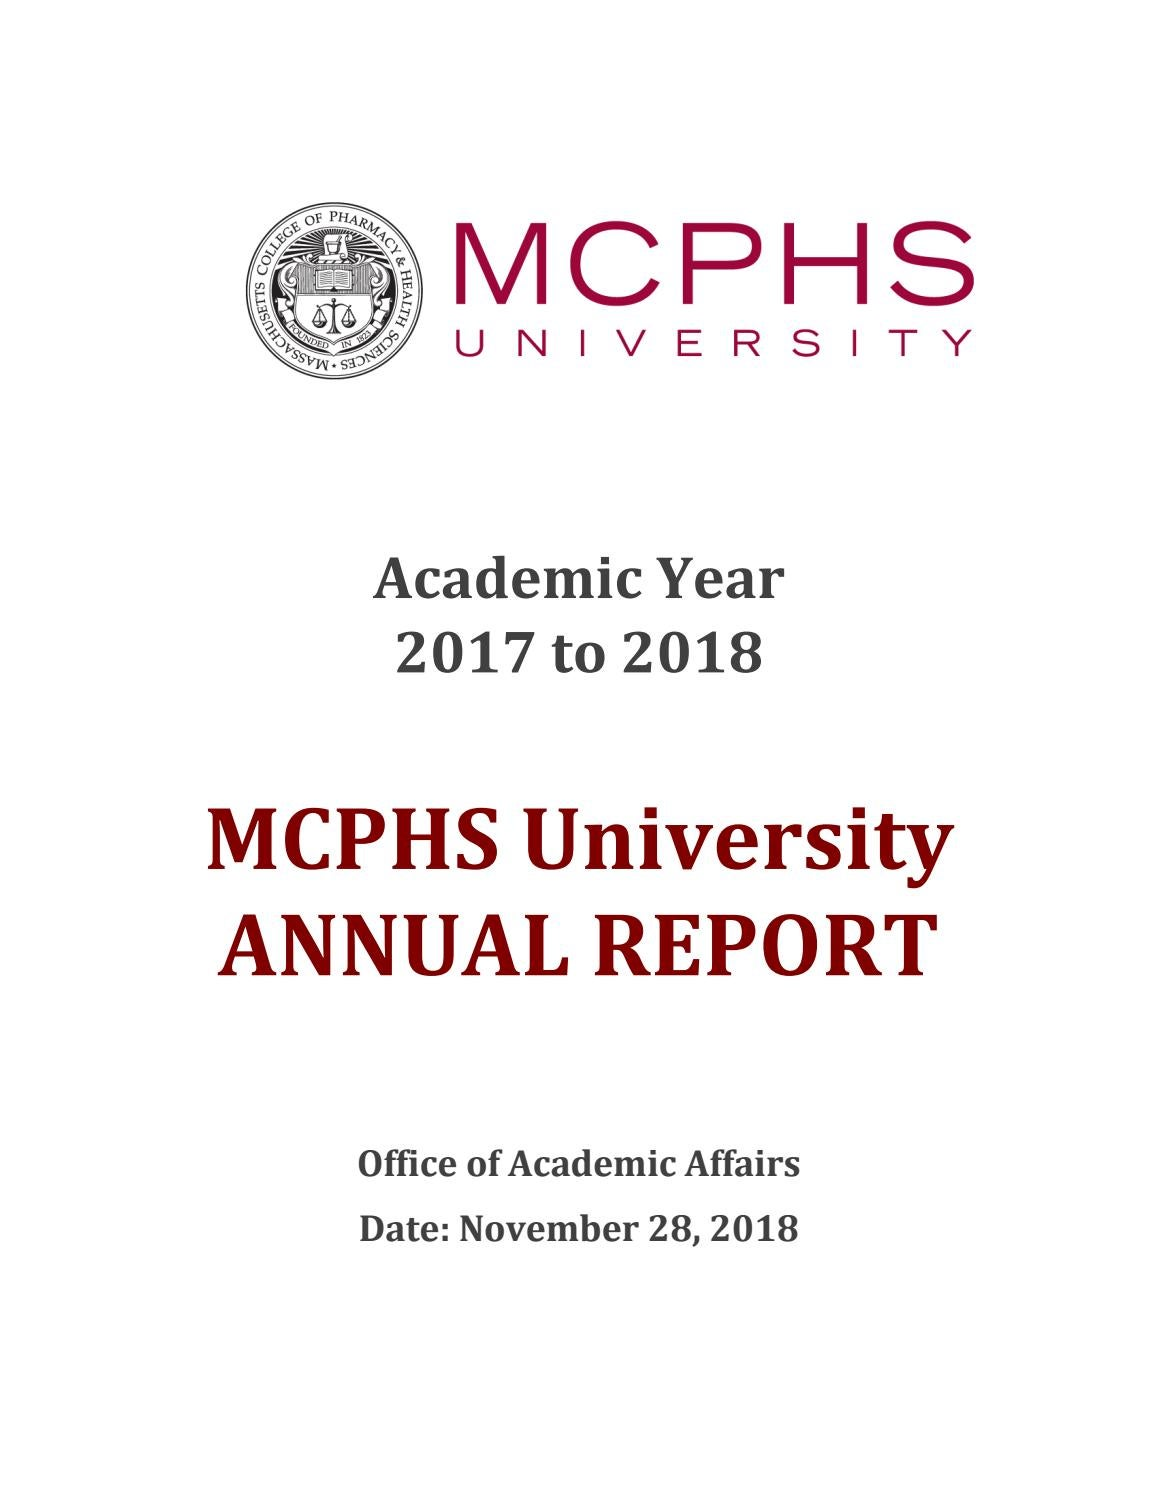 MCPHS University Annual Report by Massachusetts College of